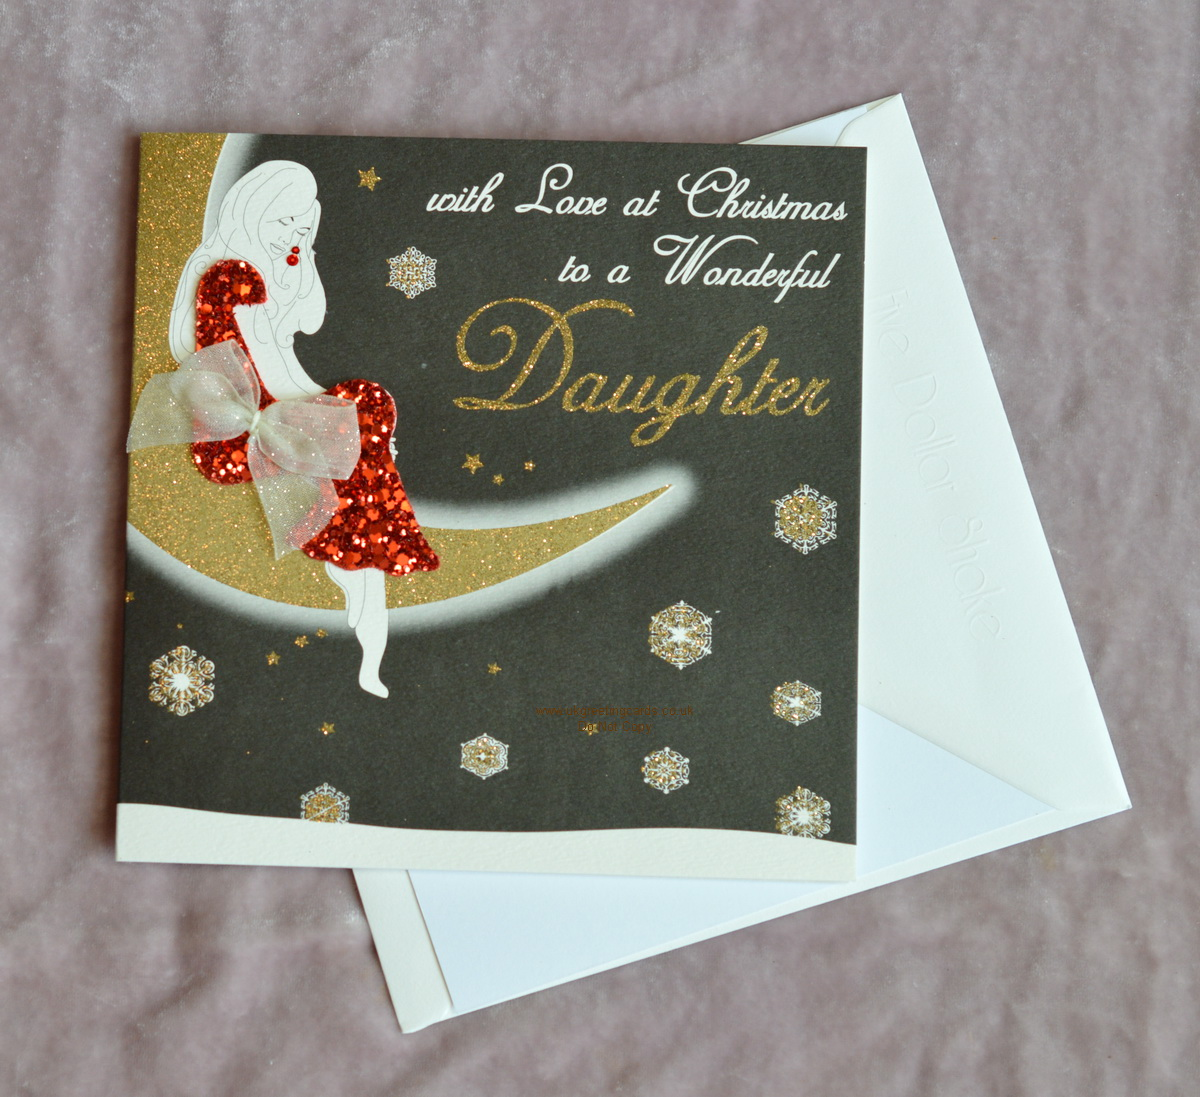 Buy christmas cards online five dollar shake christmas cards you like them as much as the team at uk greeting cards all the five dollar shake christmas cards we show you can be purchased from our online shop kristyandbryce Choice Image